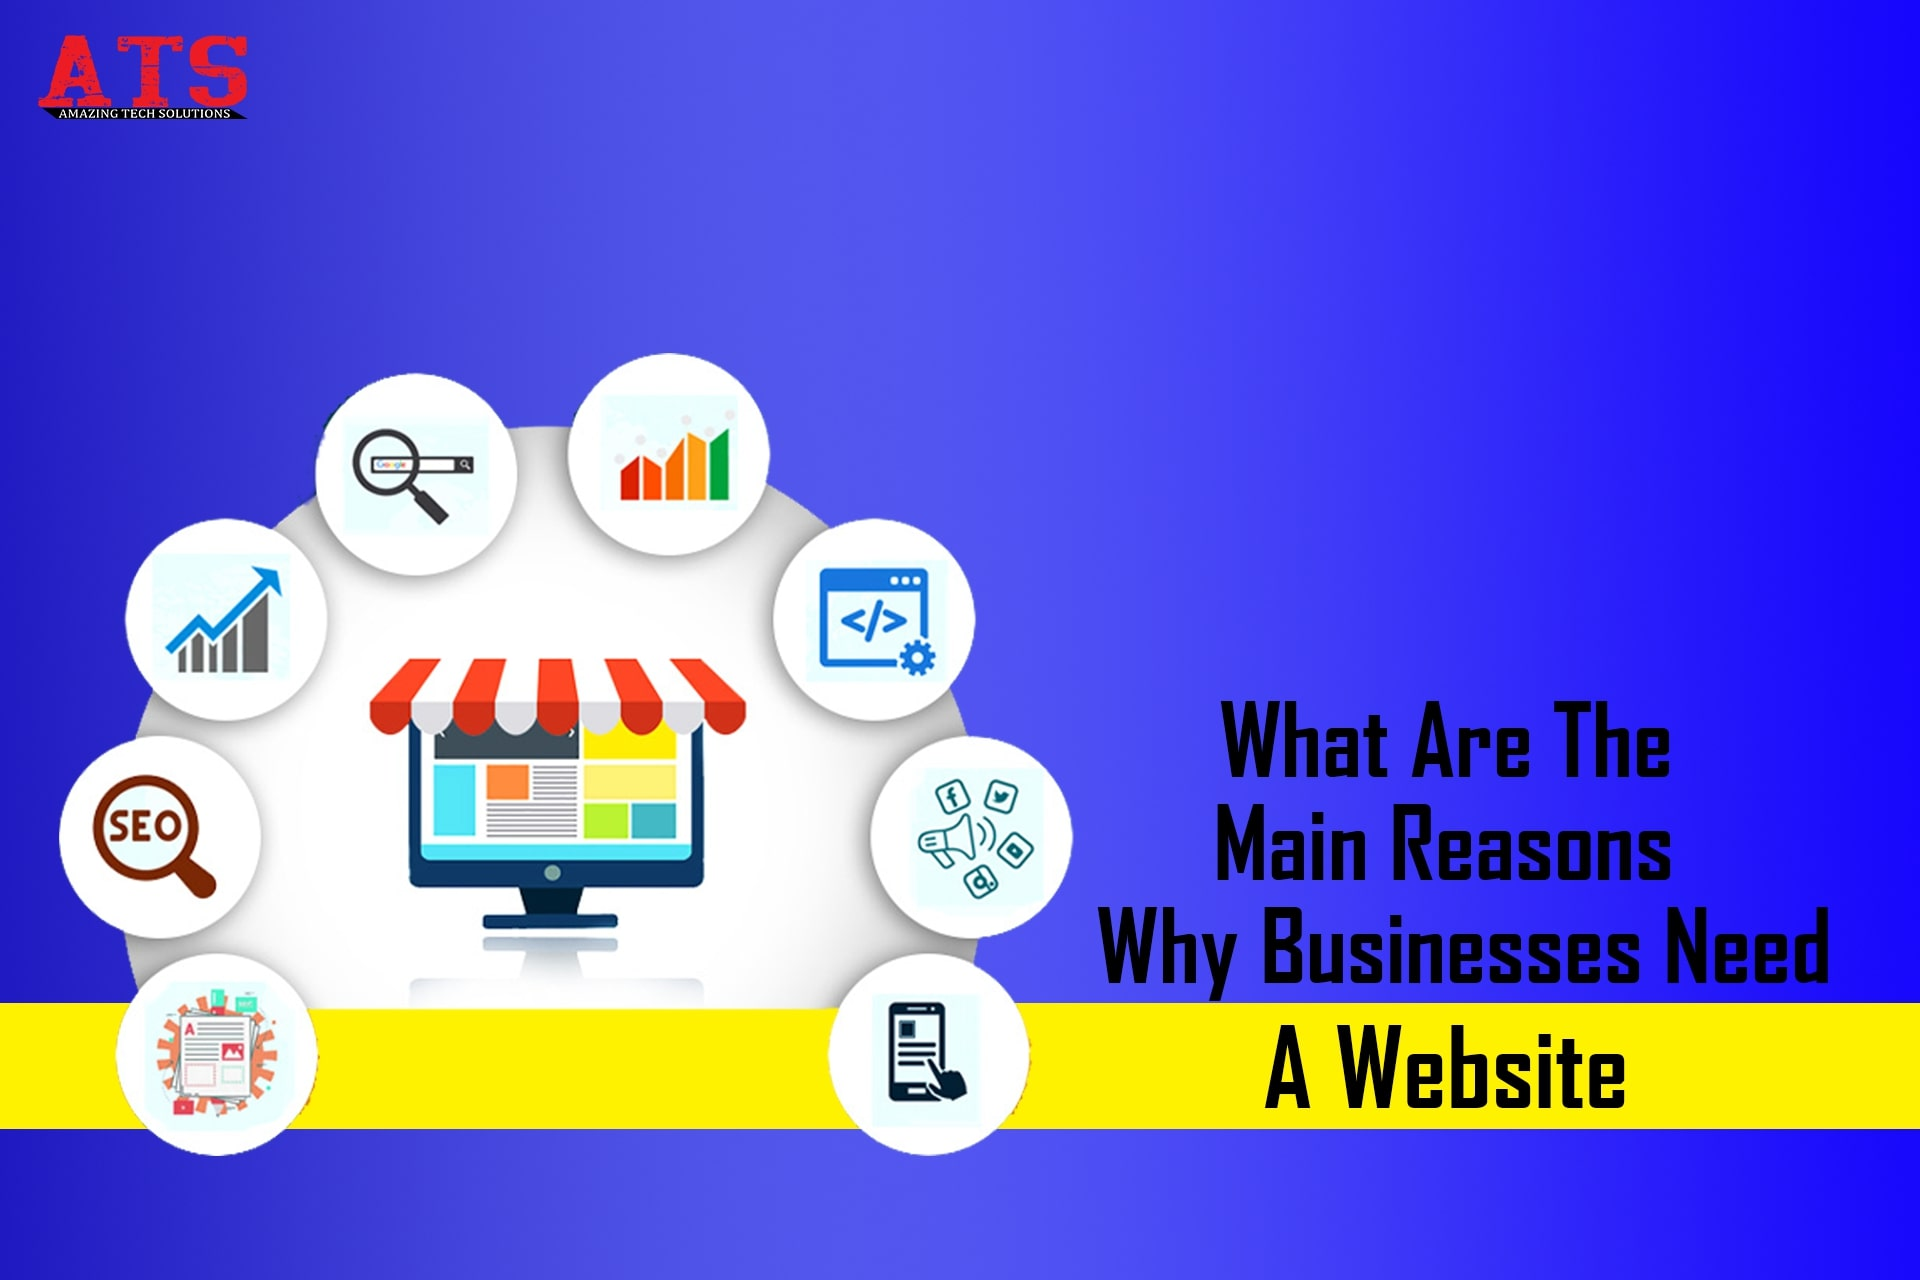 What Are The Main Reasons Why Businesses Need A Website In 2021?